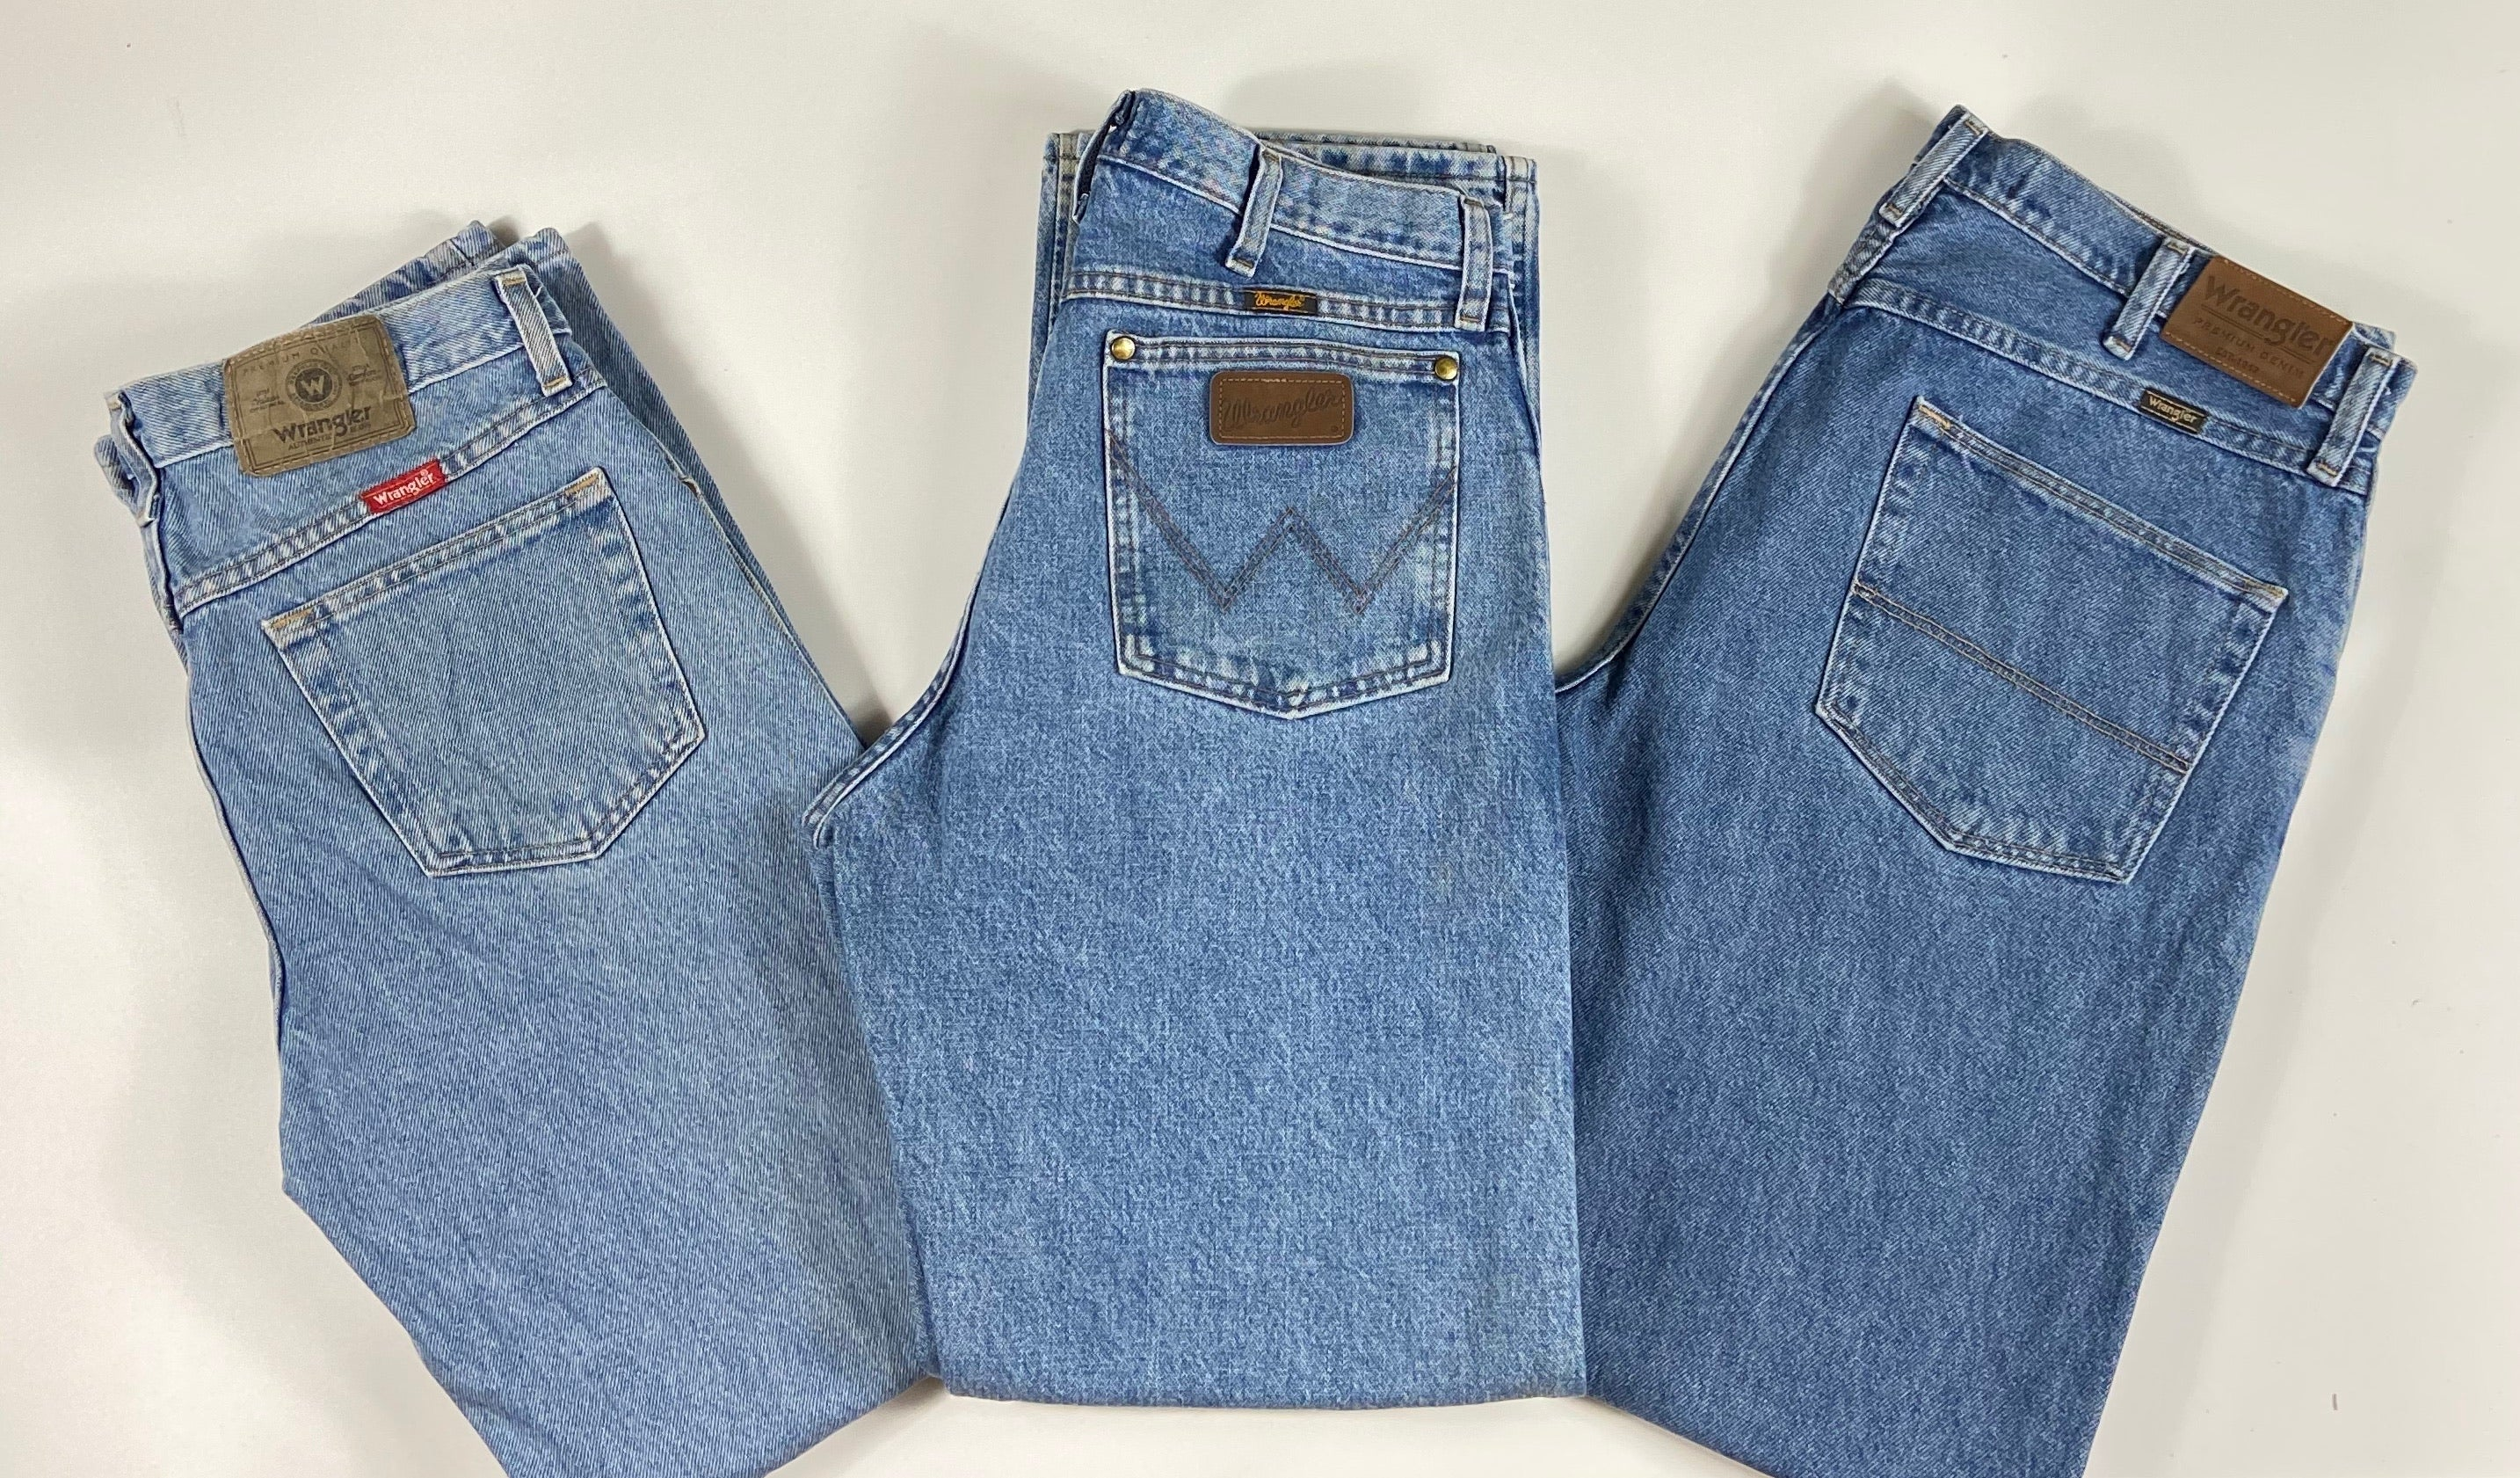 Vintage Original Wrangler Light Blue Denim Jeans Waist 40 Length 32